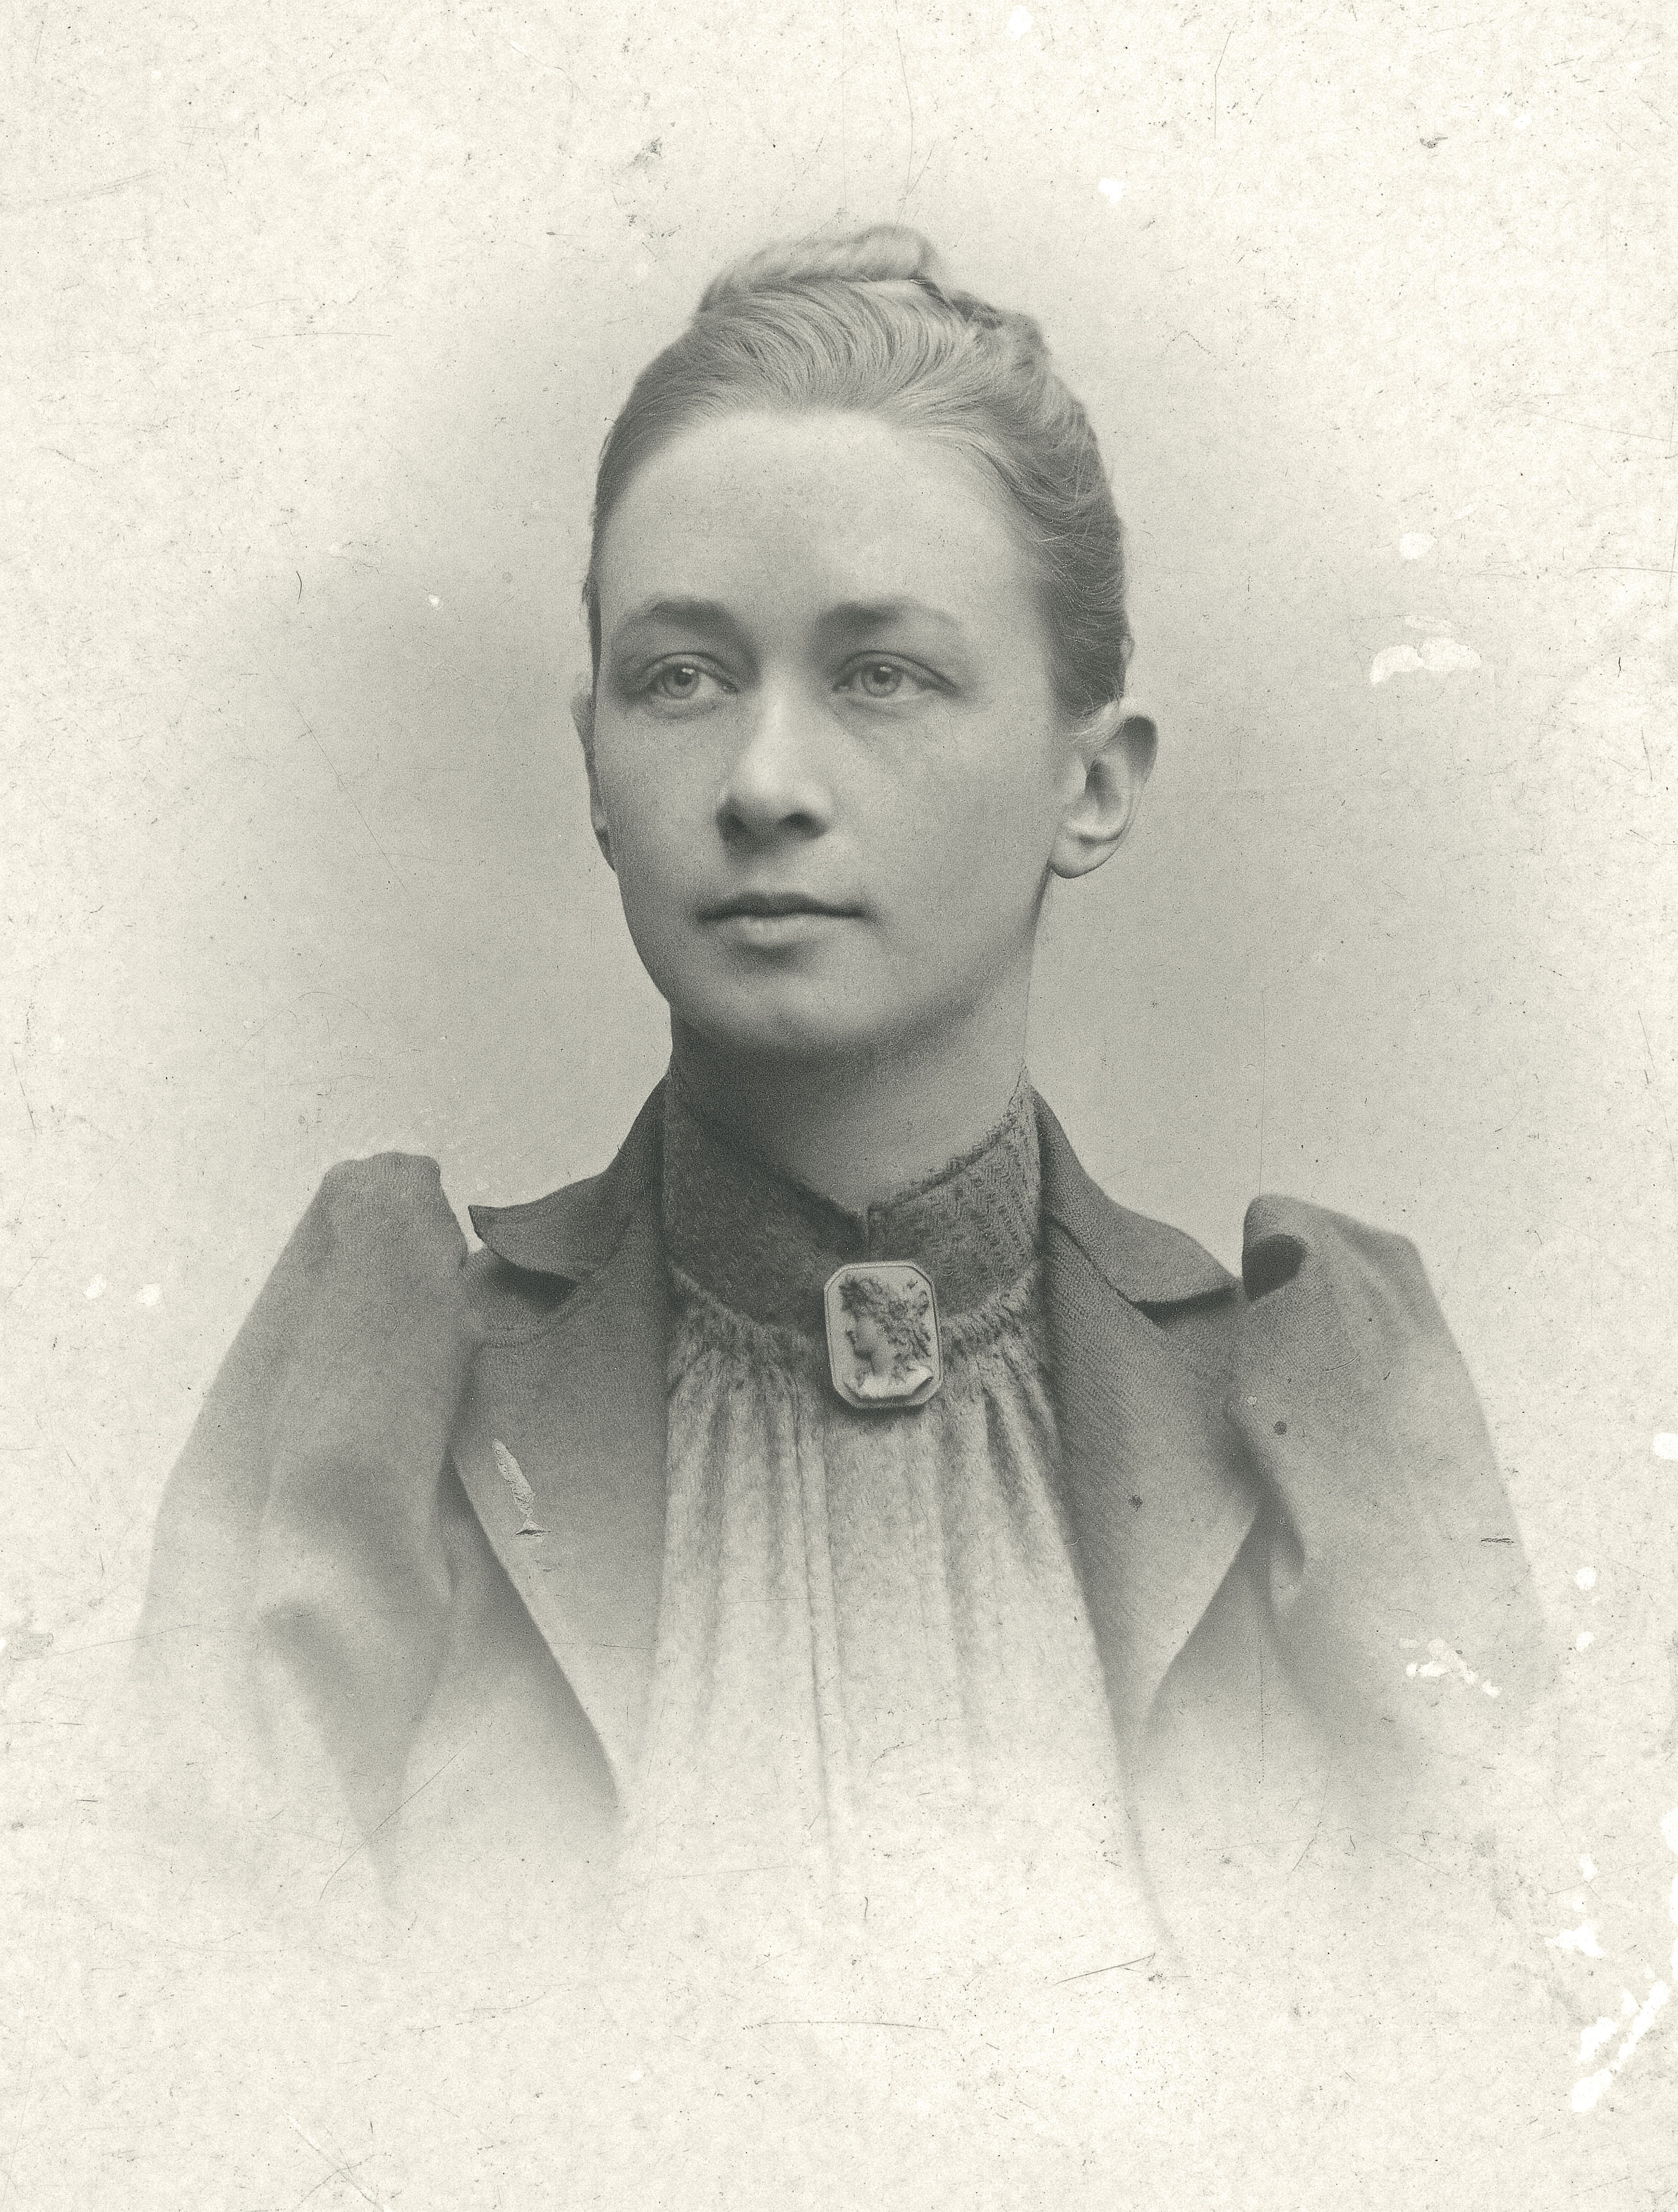 Hilma_af_Klint,_portrait_photograph_published_in_1901